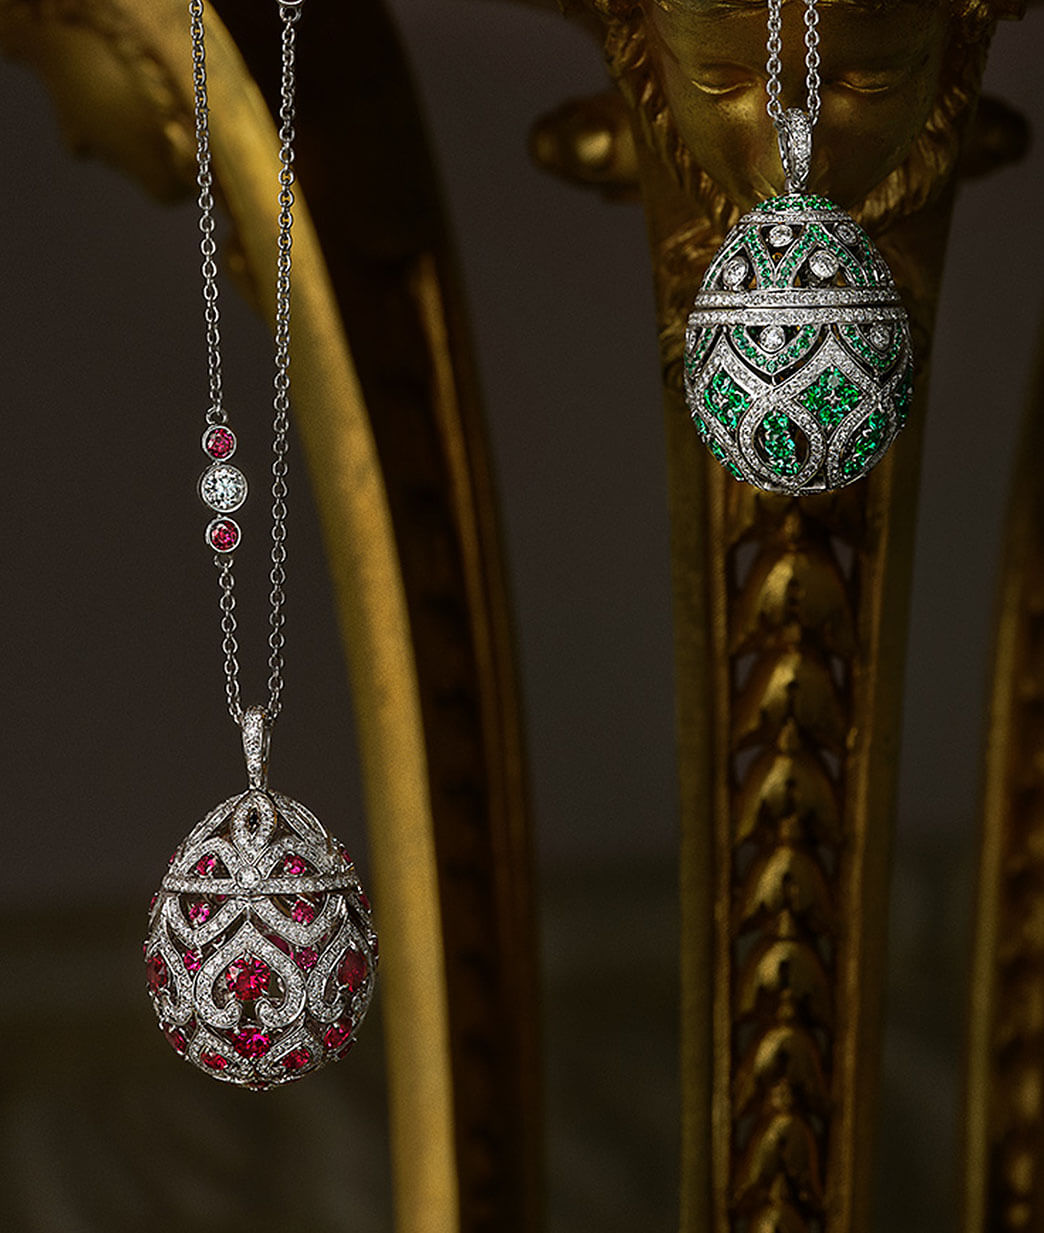 Close up view of two Fabergé egg pendants. Pendant on left: Turquoise enamel with white diamonds and yellow gold. Pendant on right: Pink enamel with white diamonds and yellow gold.